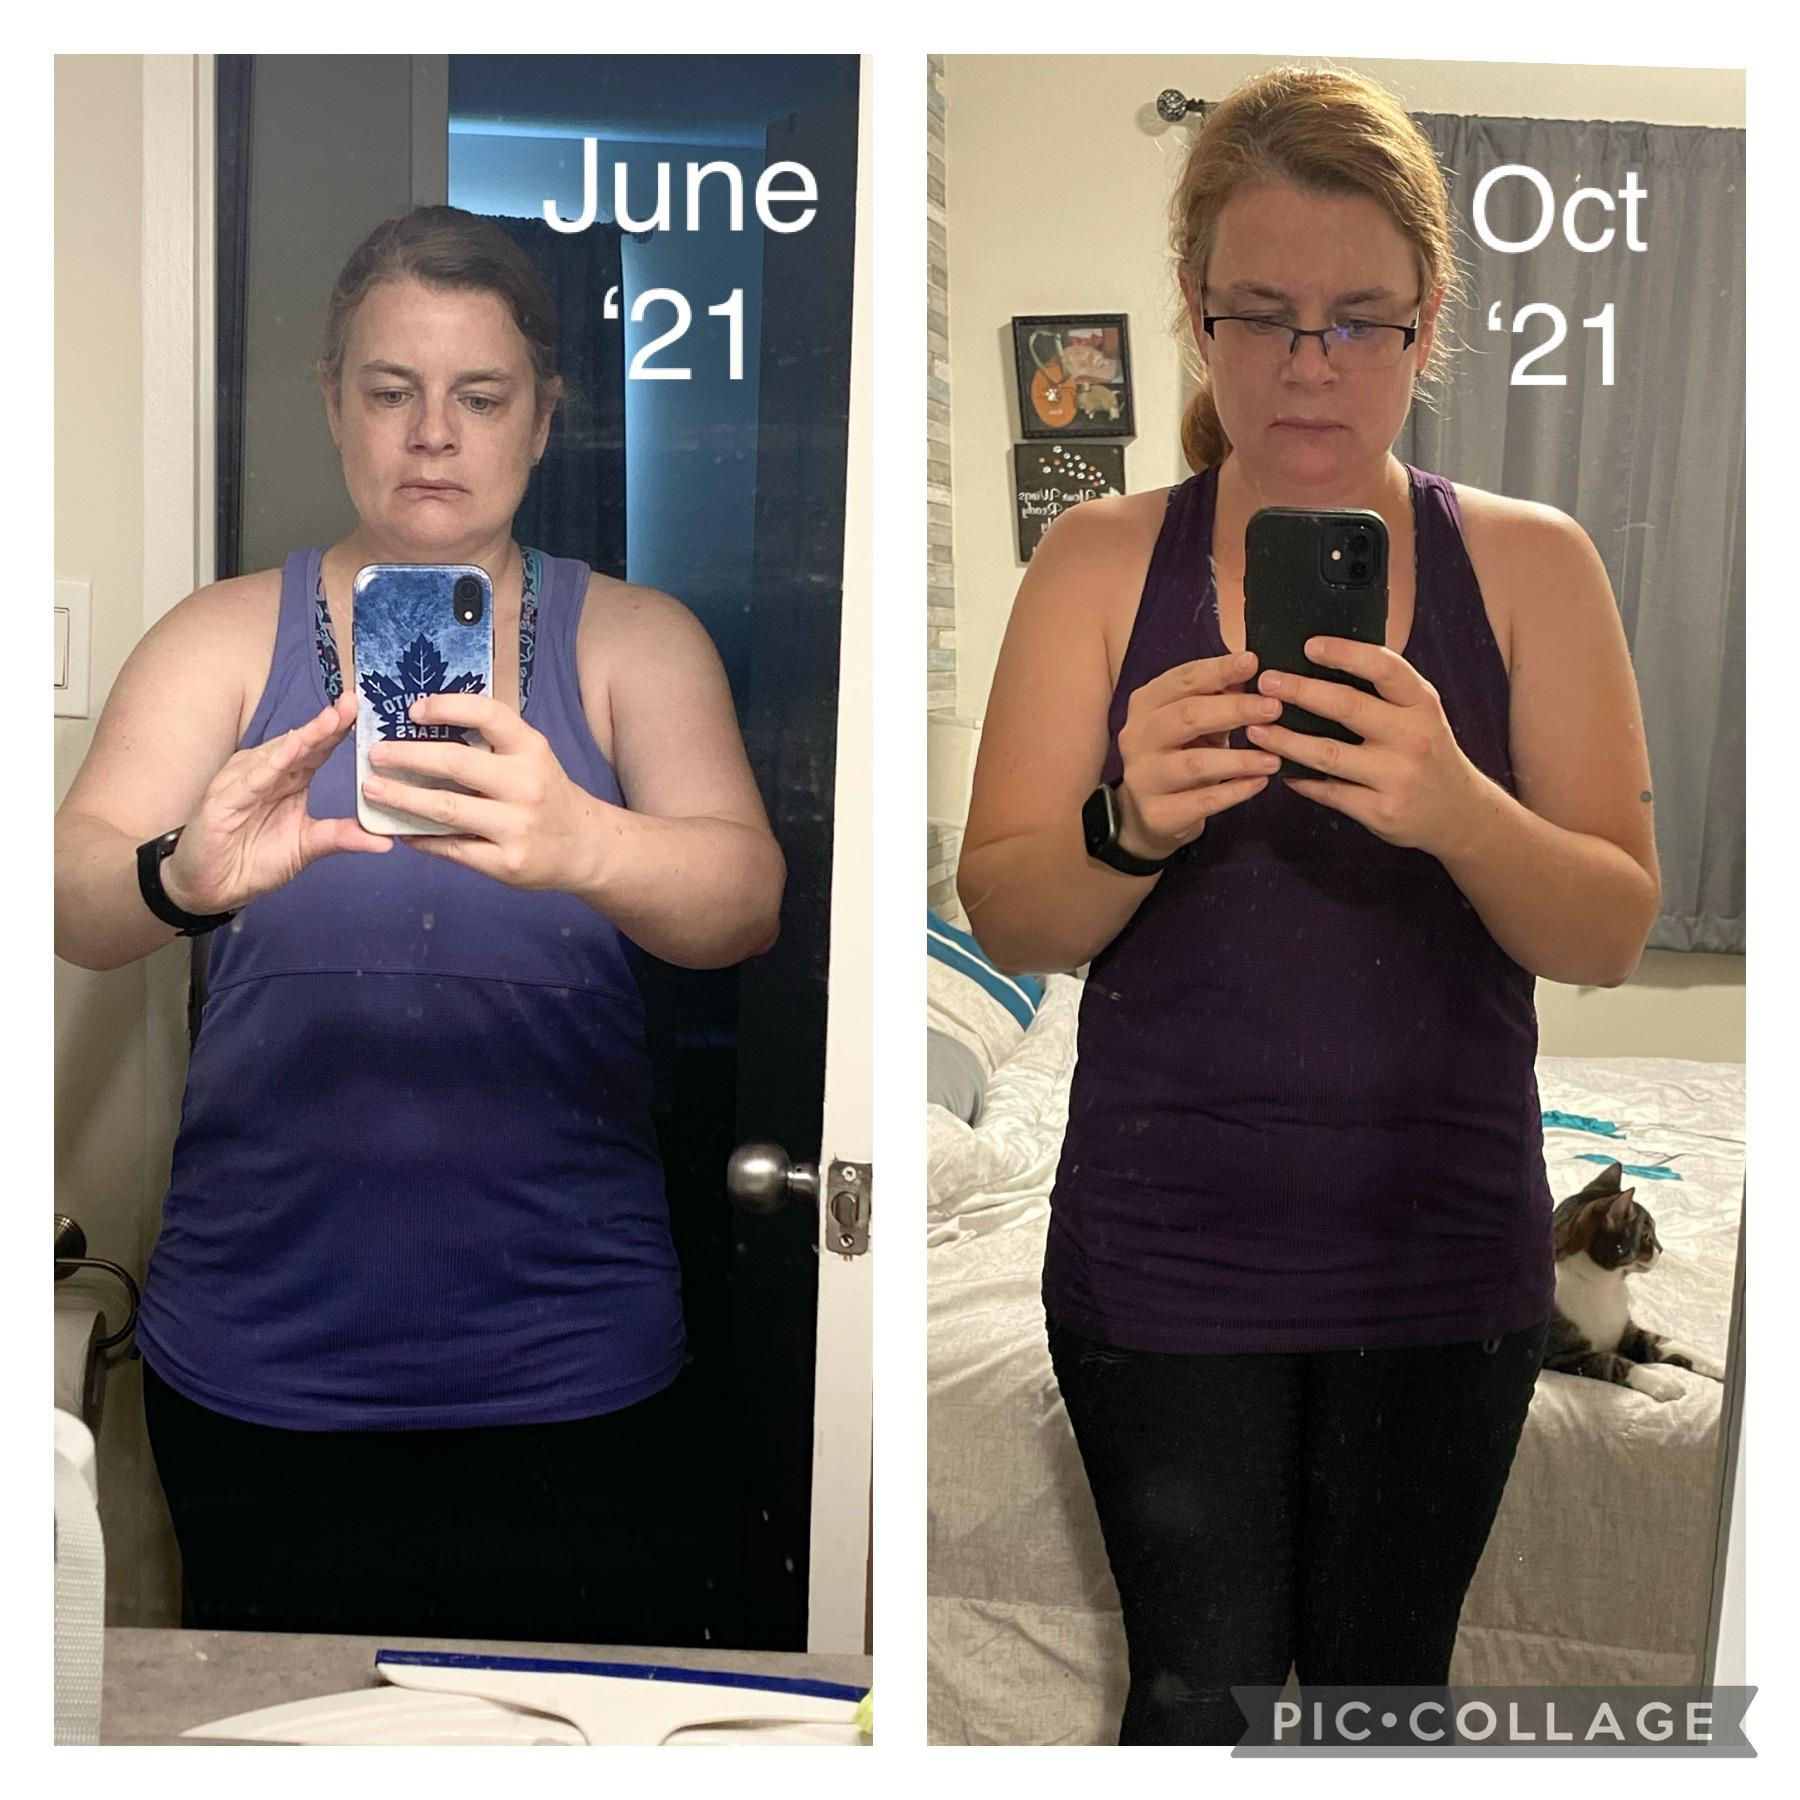 5 feet 3 Female Before and After 12 lbs Weight Loss 178 lbs to 166 lbs